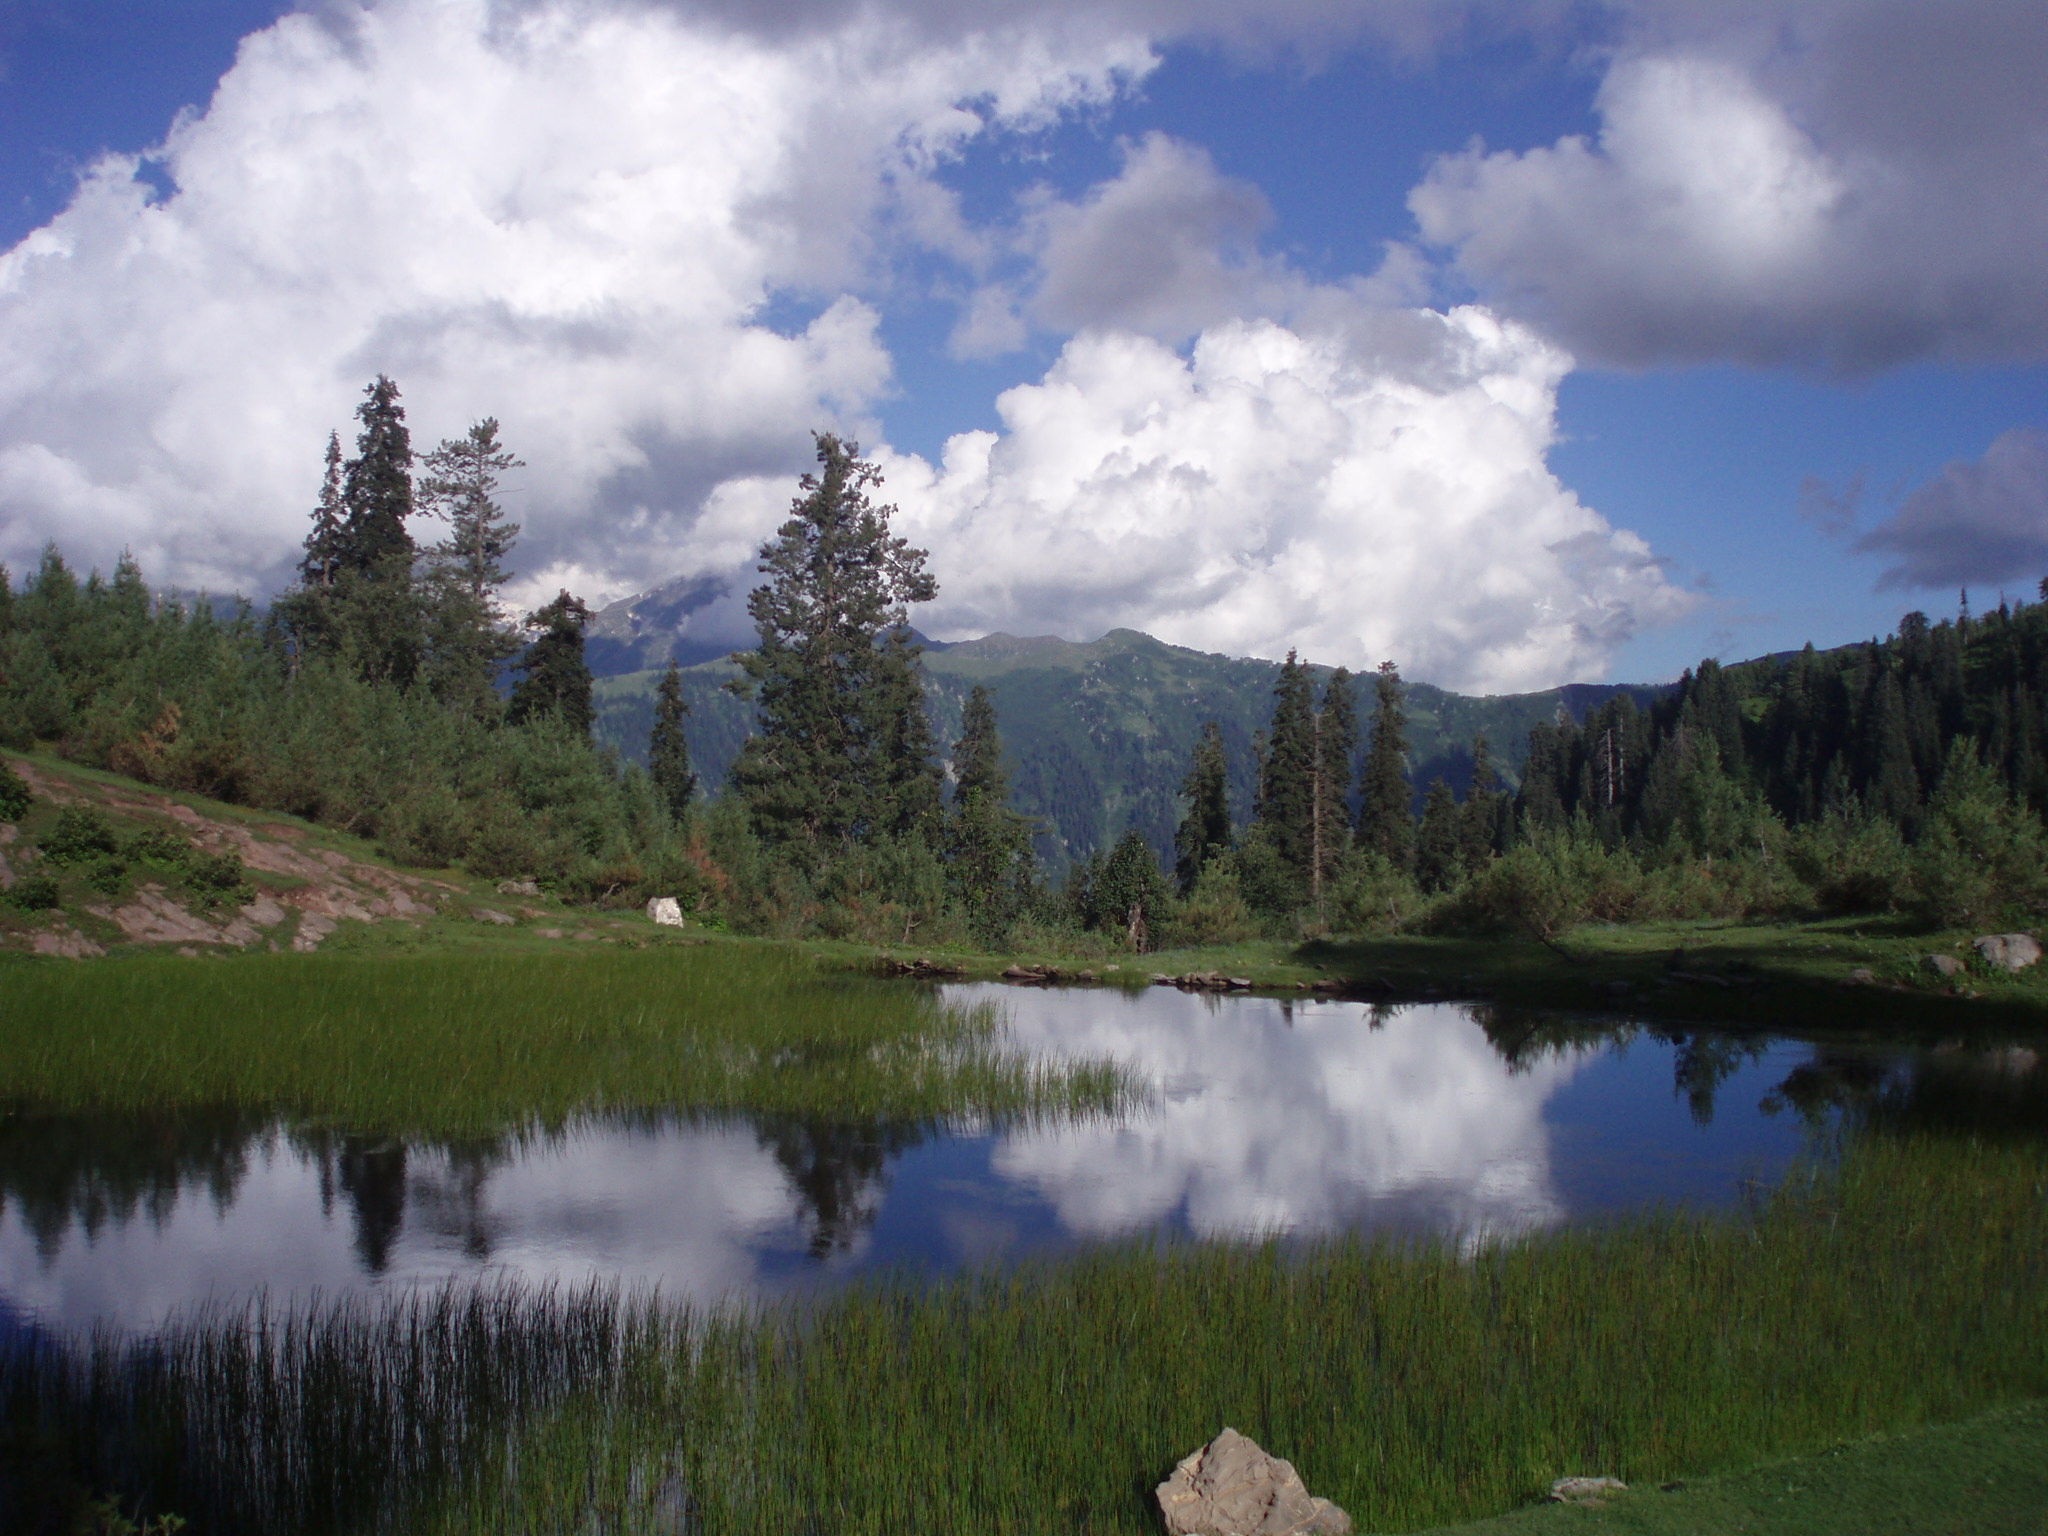 File:Payee Lake Background View July 8 2007.jpg